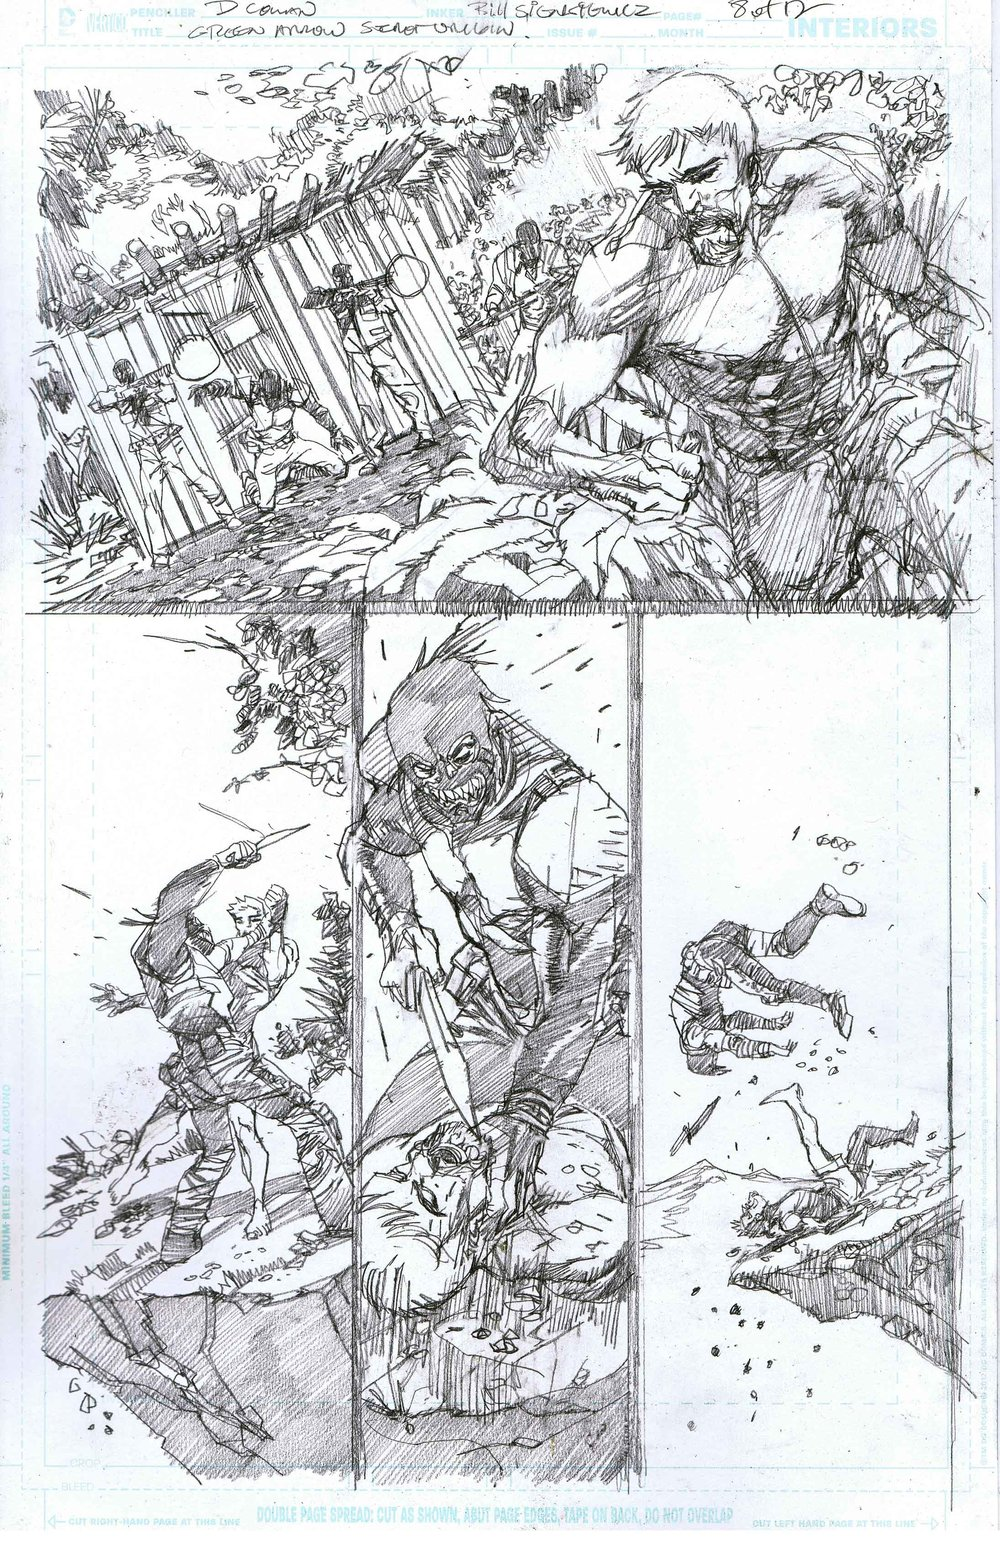 Green Arrow: Secret Origins - Page 8 - Pencils